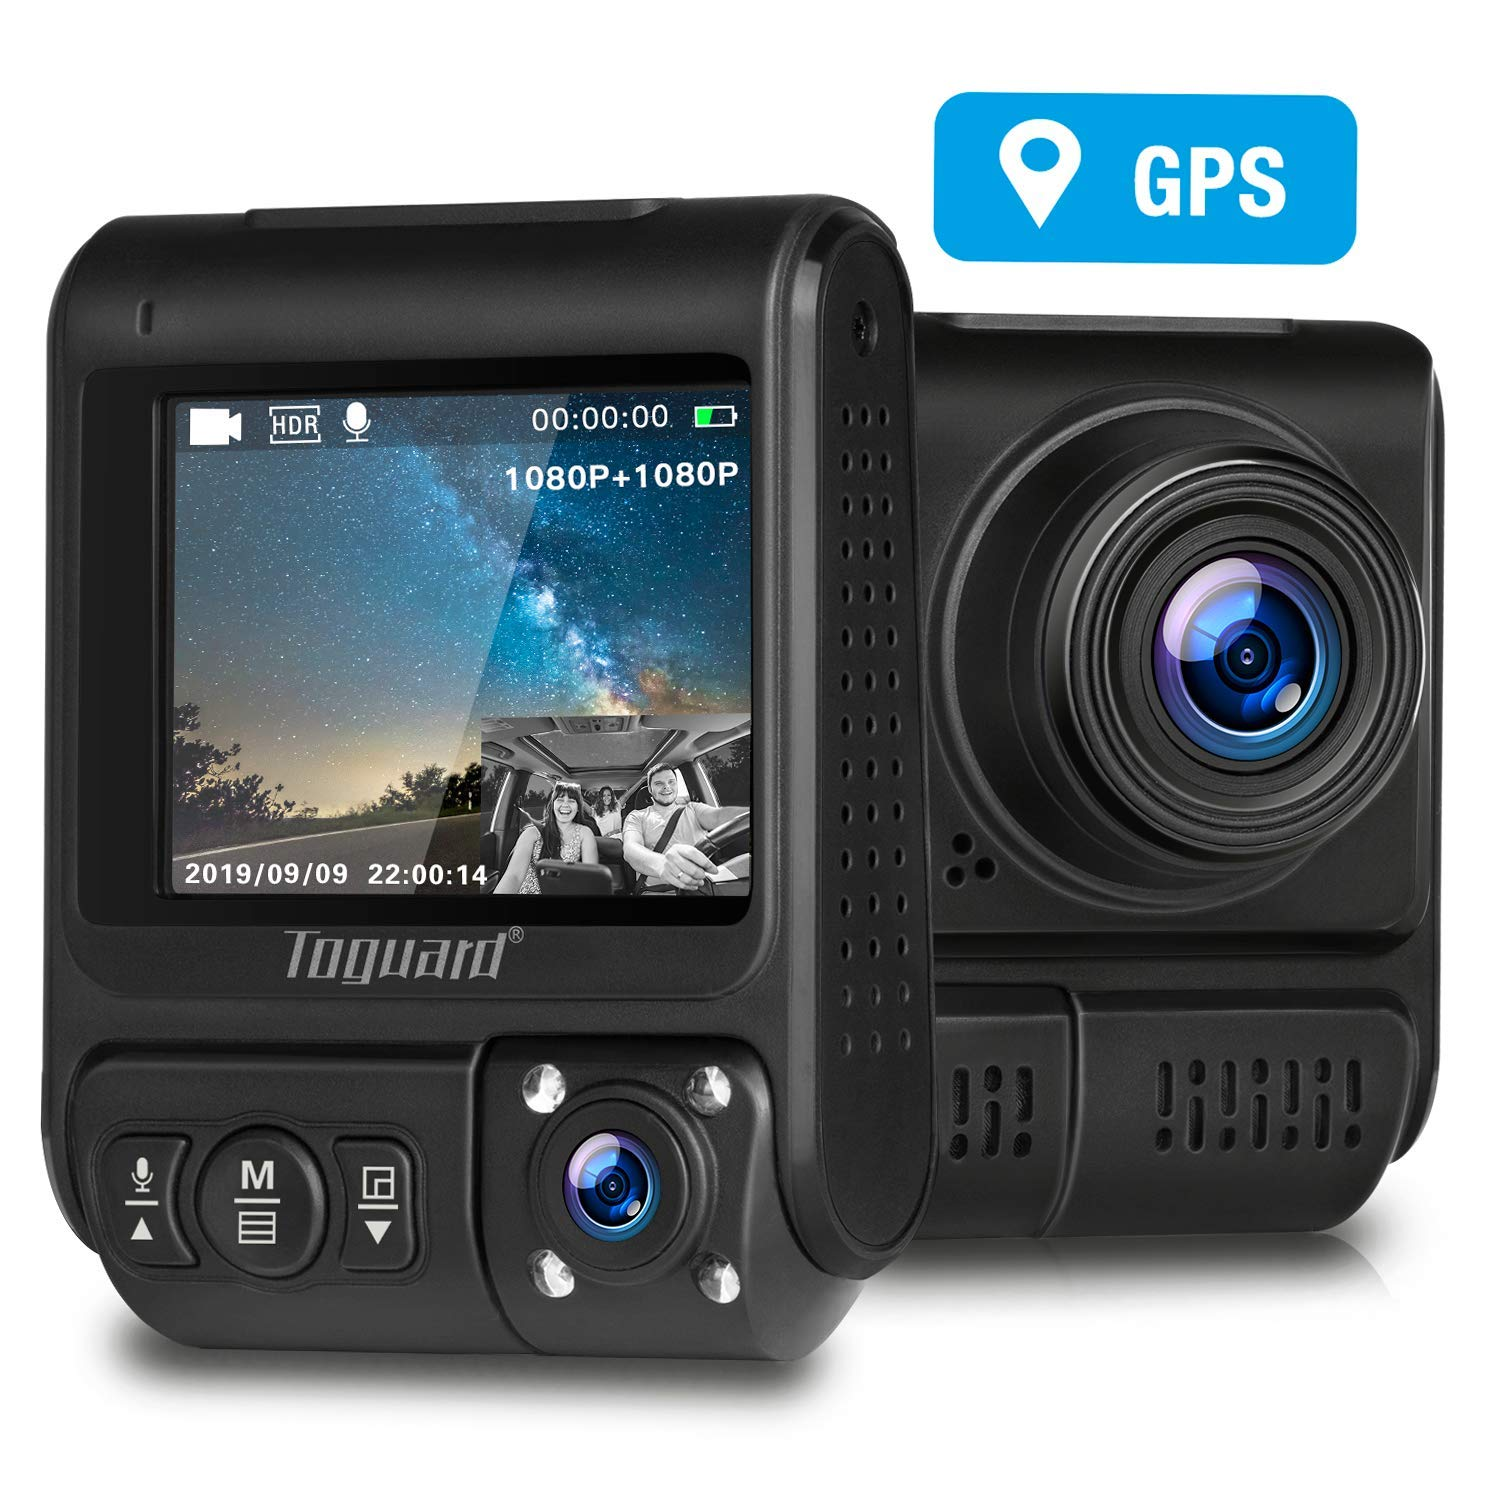 TOGUARD Uber Dual Dash Cam Built-in GPS in Car Driving Recorder 1080P Front and 1080P Cabin Dash Camera IR Night Vision 2'' 330° Car Camera with Parking Monitor, WDR, Motion Detection for Car Taxi by TOGUARD